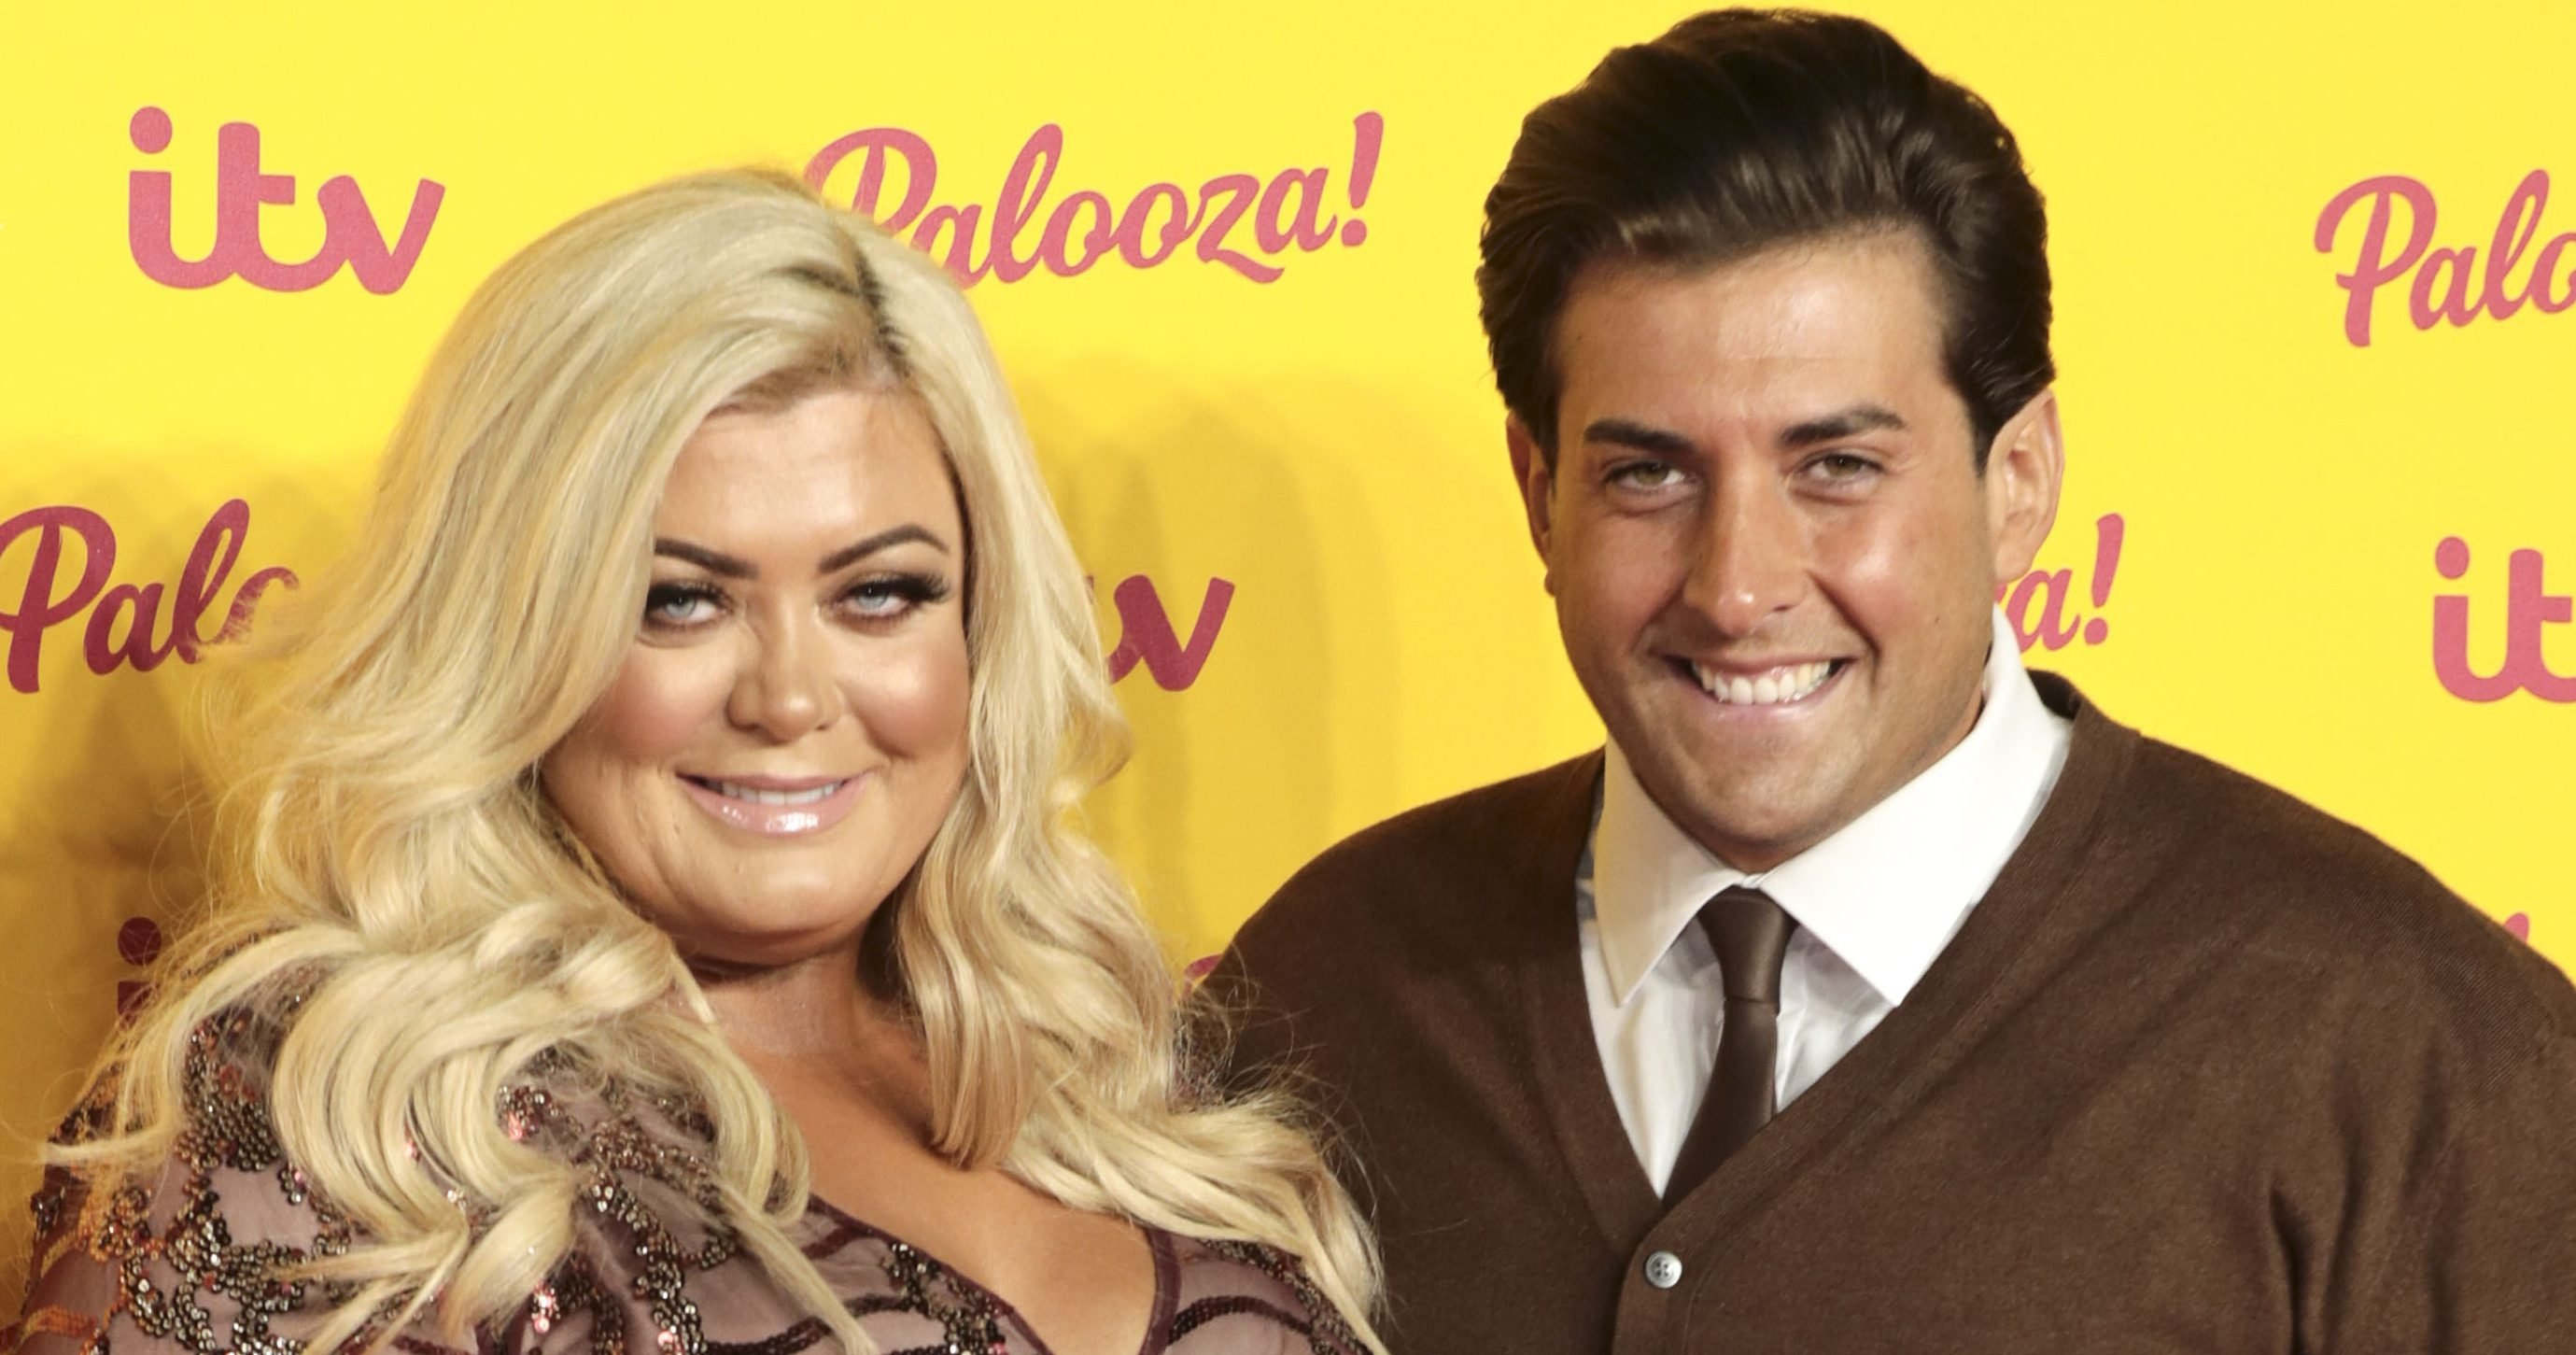 Gemma Collins says James Argent's weight gain ruined their sex life